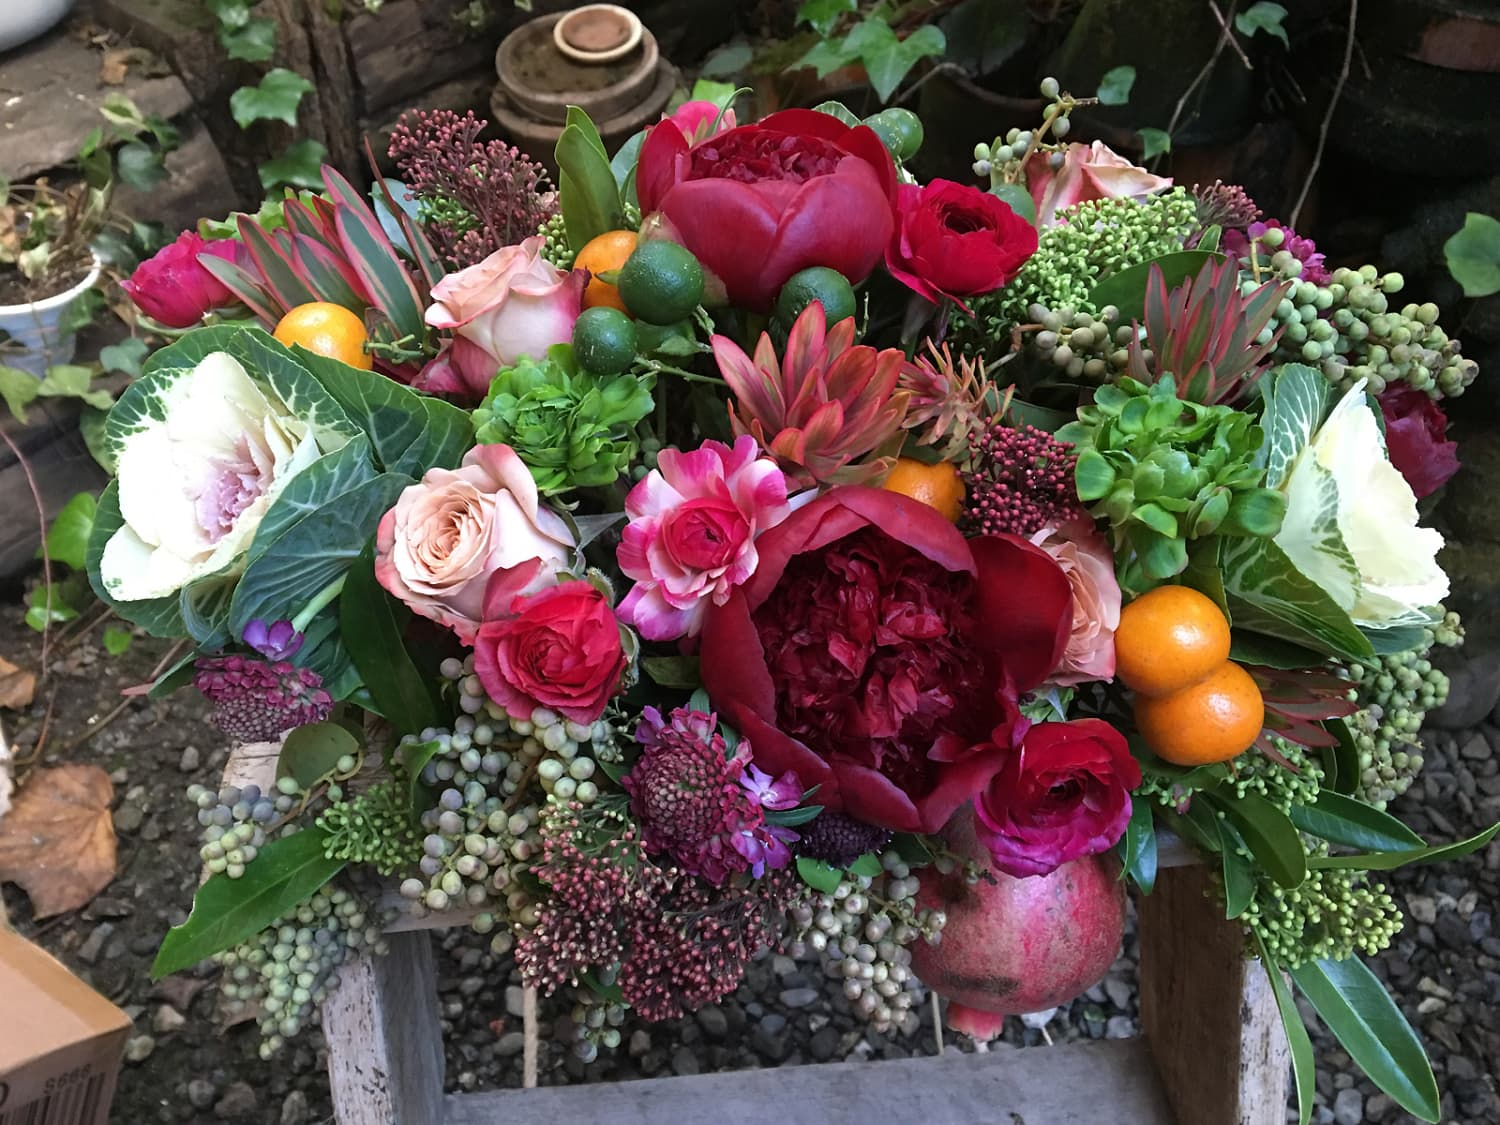 How to Create a Cheap, Chic Bouquet to Bring to Thanksgiving Dinner, According to a Pro Florist